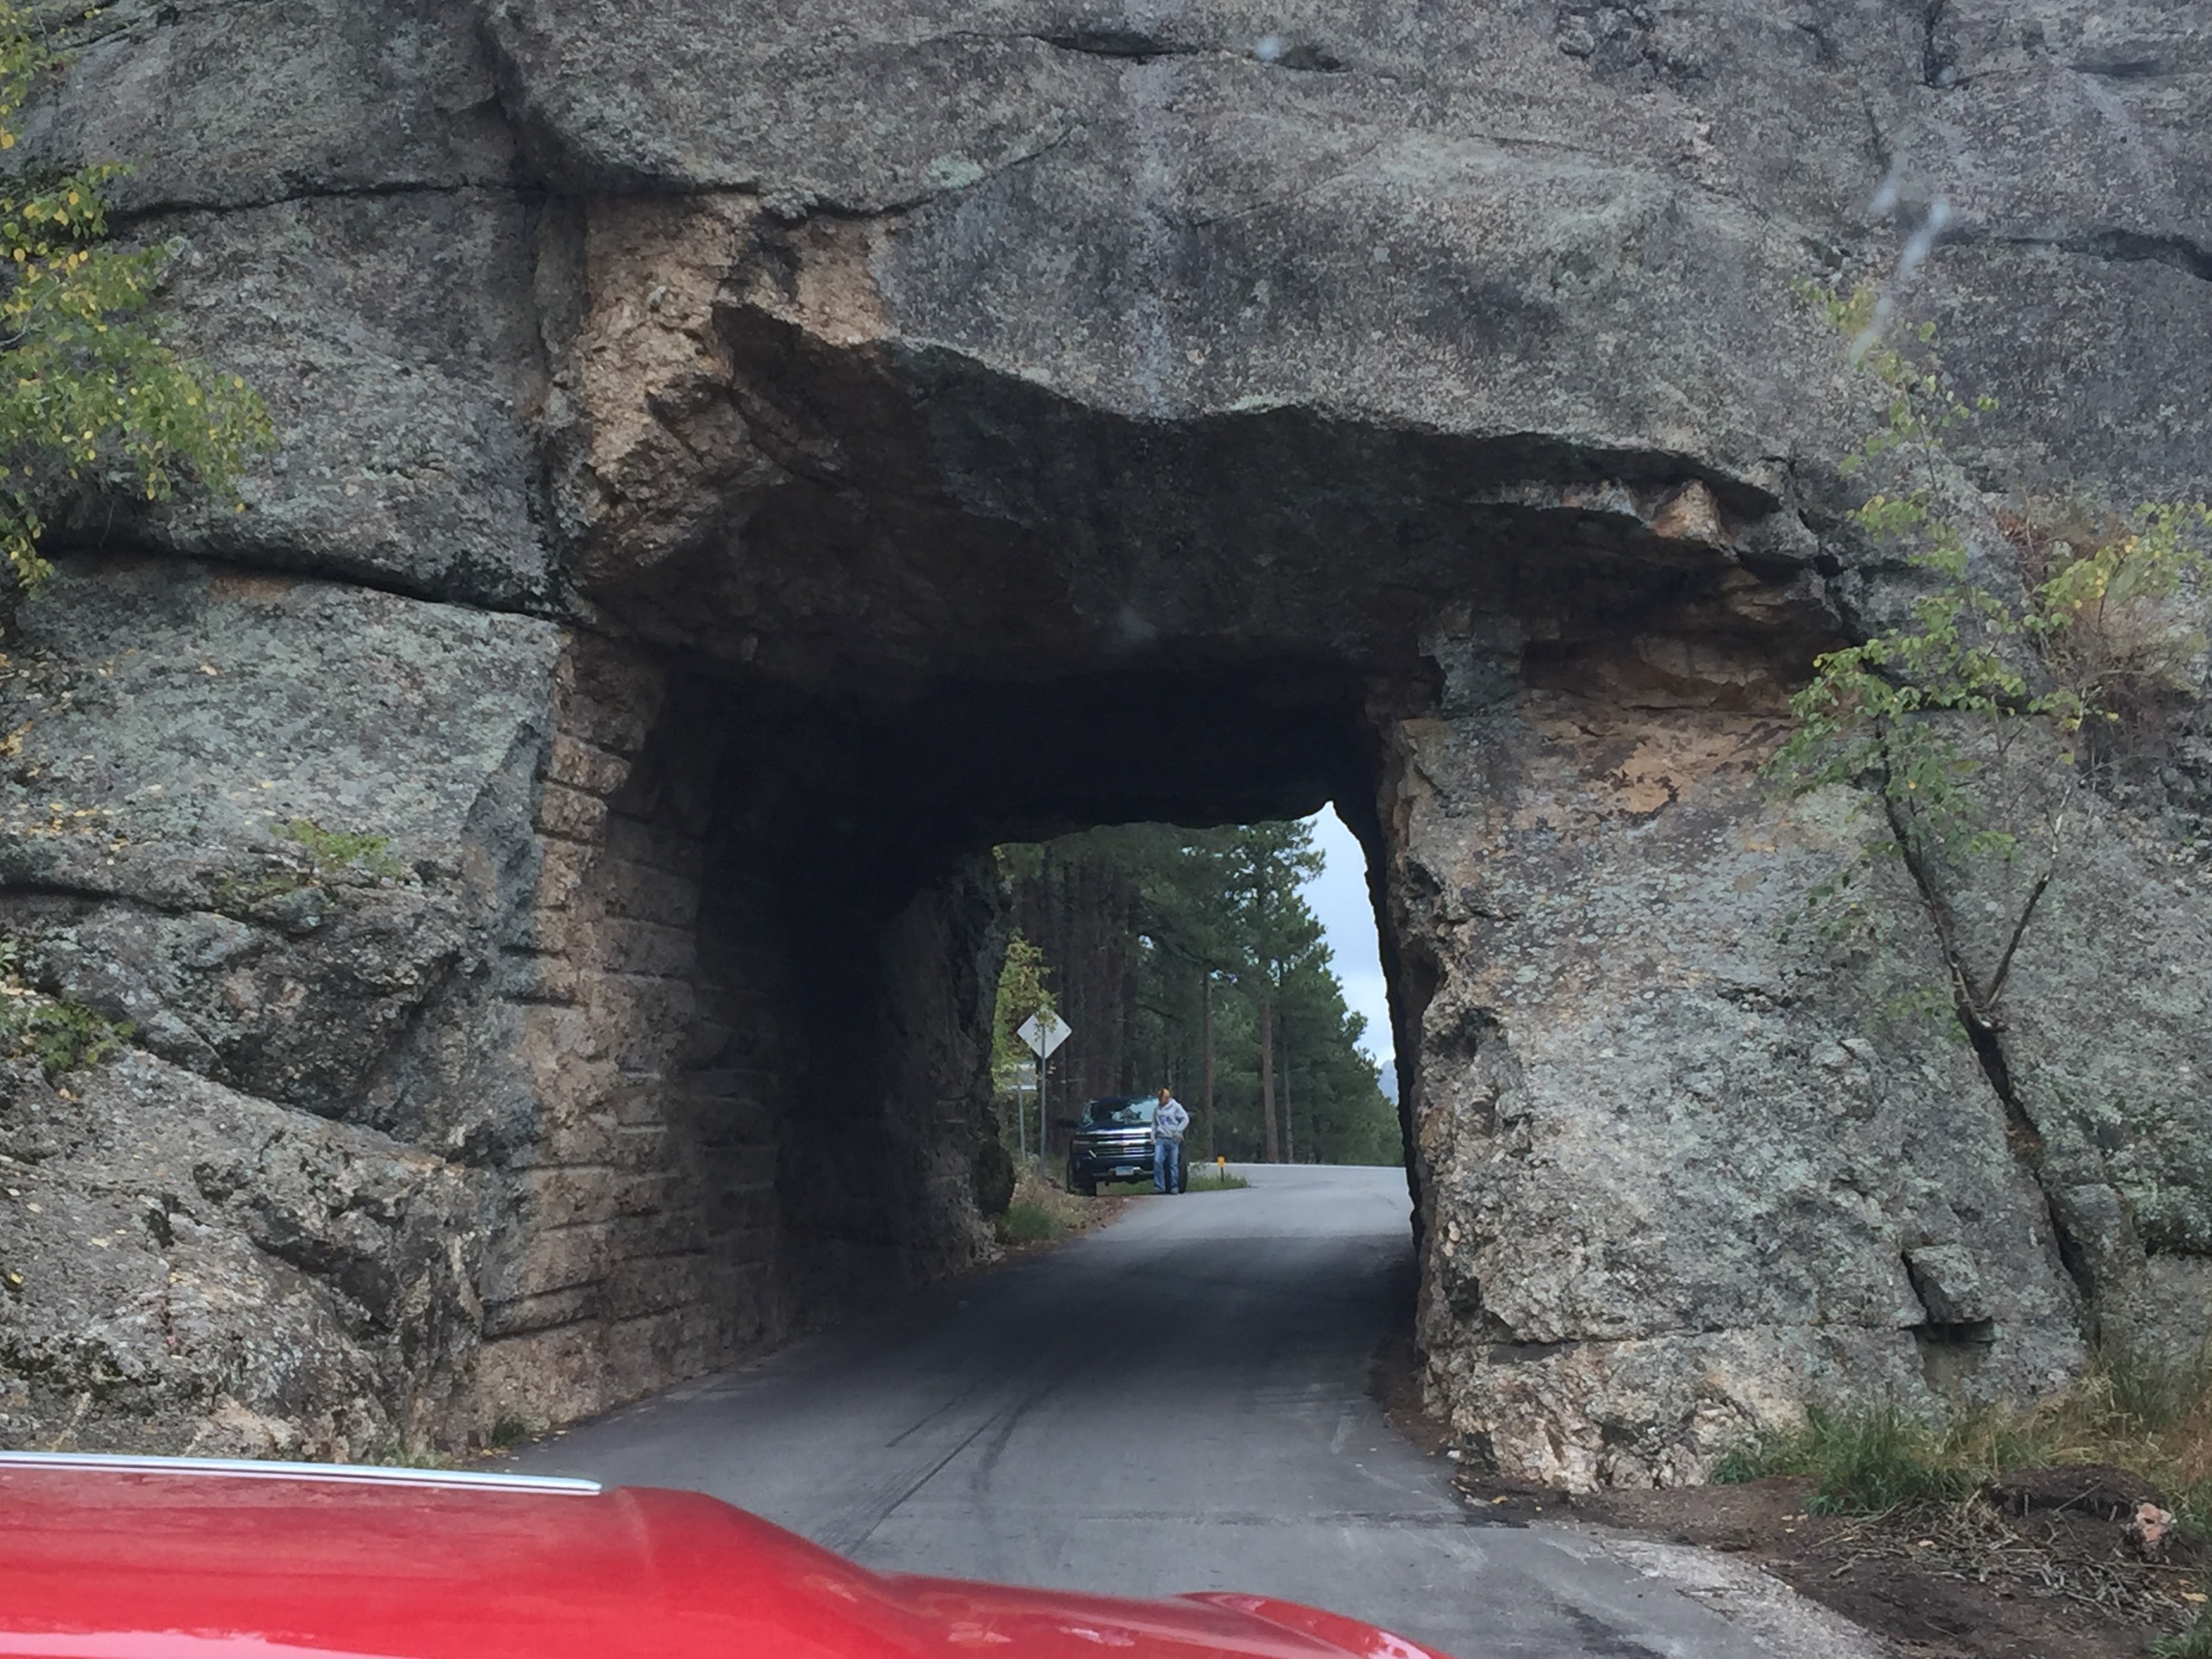 2017-09-17 Black Hills 11 Pigtail Tunnel 06